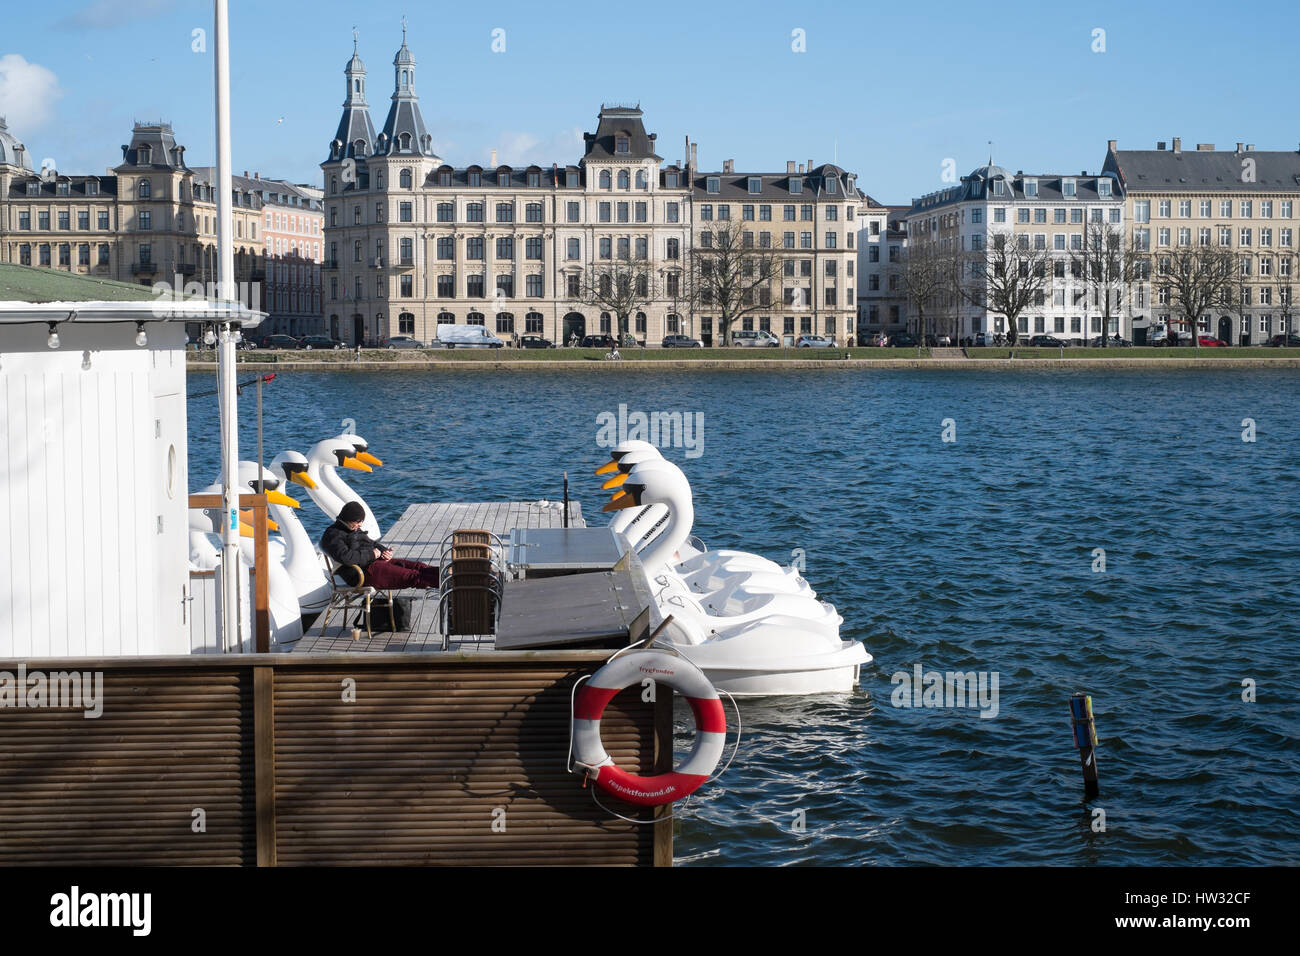 Swan boats at Søerne (The Lakes) in early spring, Copenhagen, Denmark - Stock Image